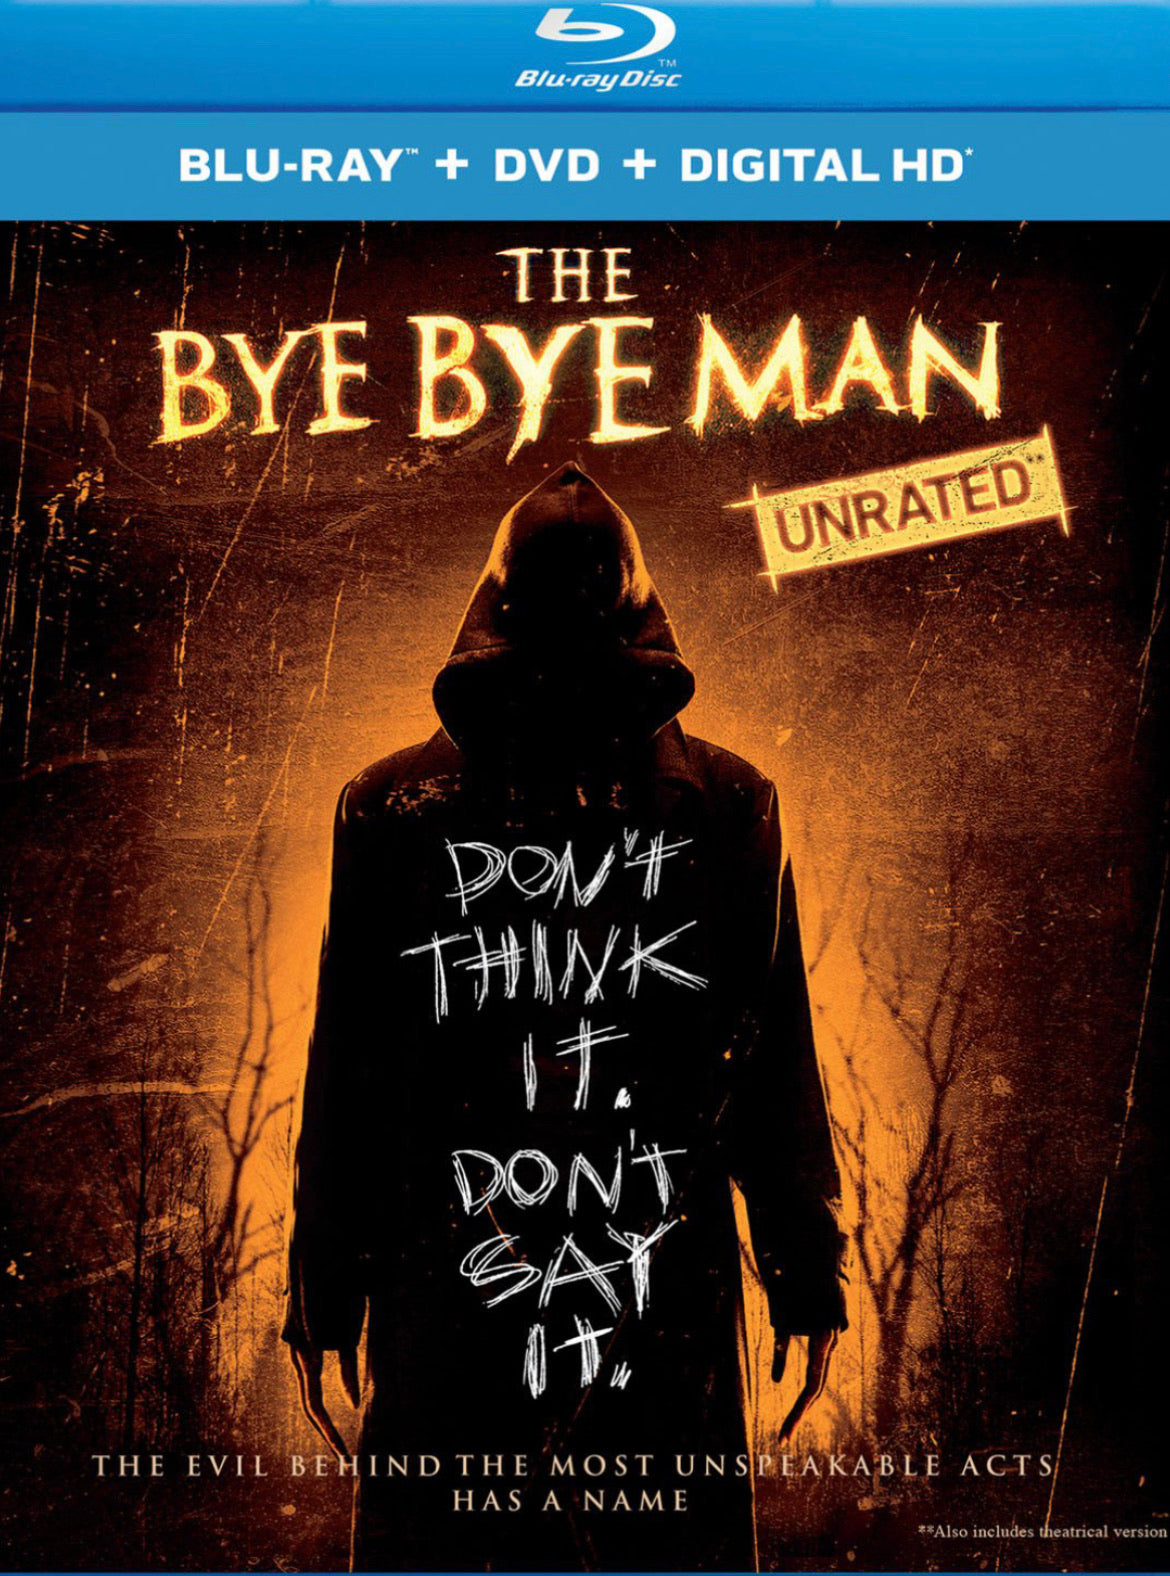 The Bye Bye Man Unrated (2017) Vudu HD redemption only